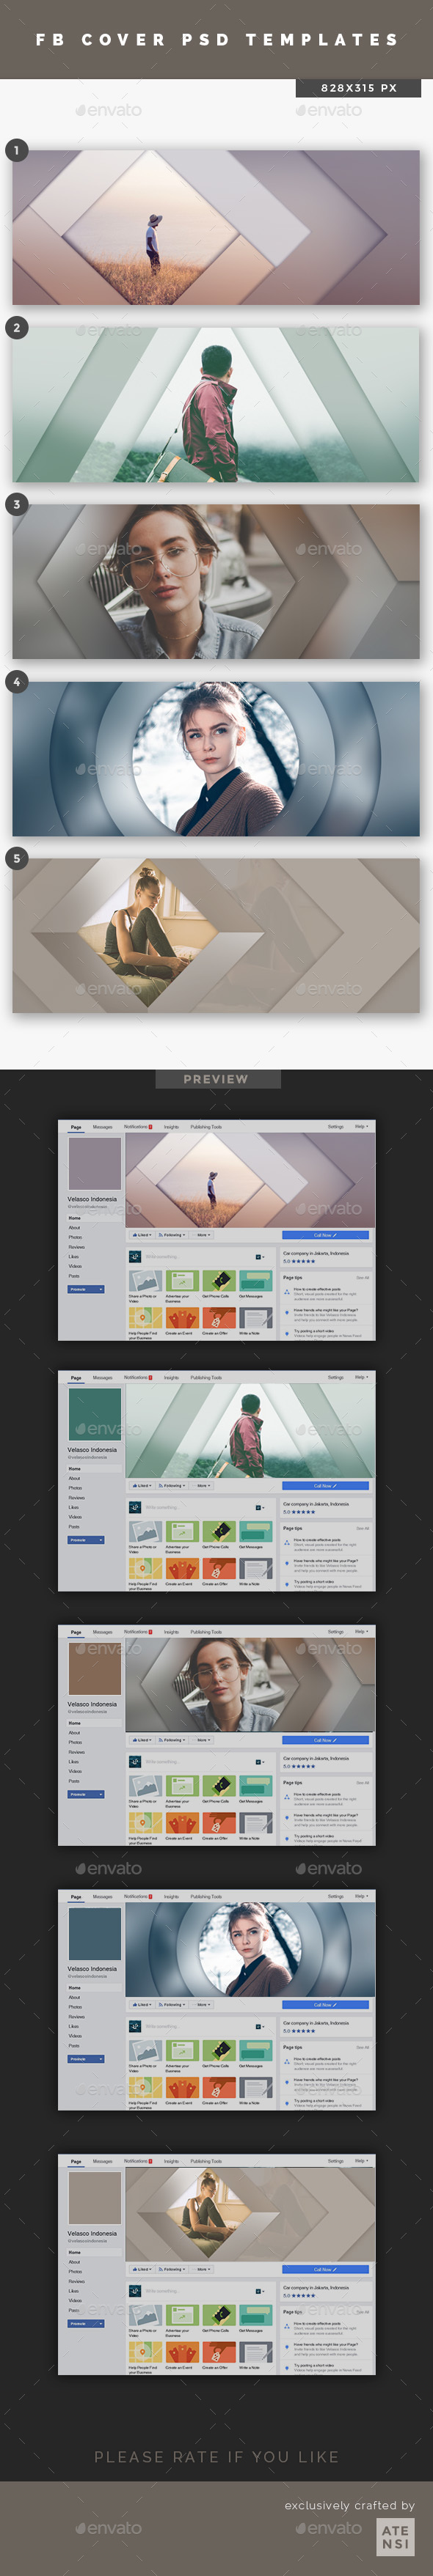 Urban Creative Facebook Cover - Social Media Web Elements